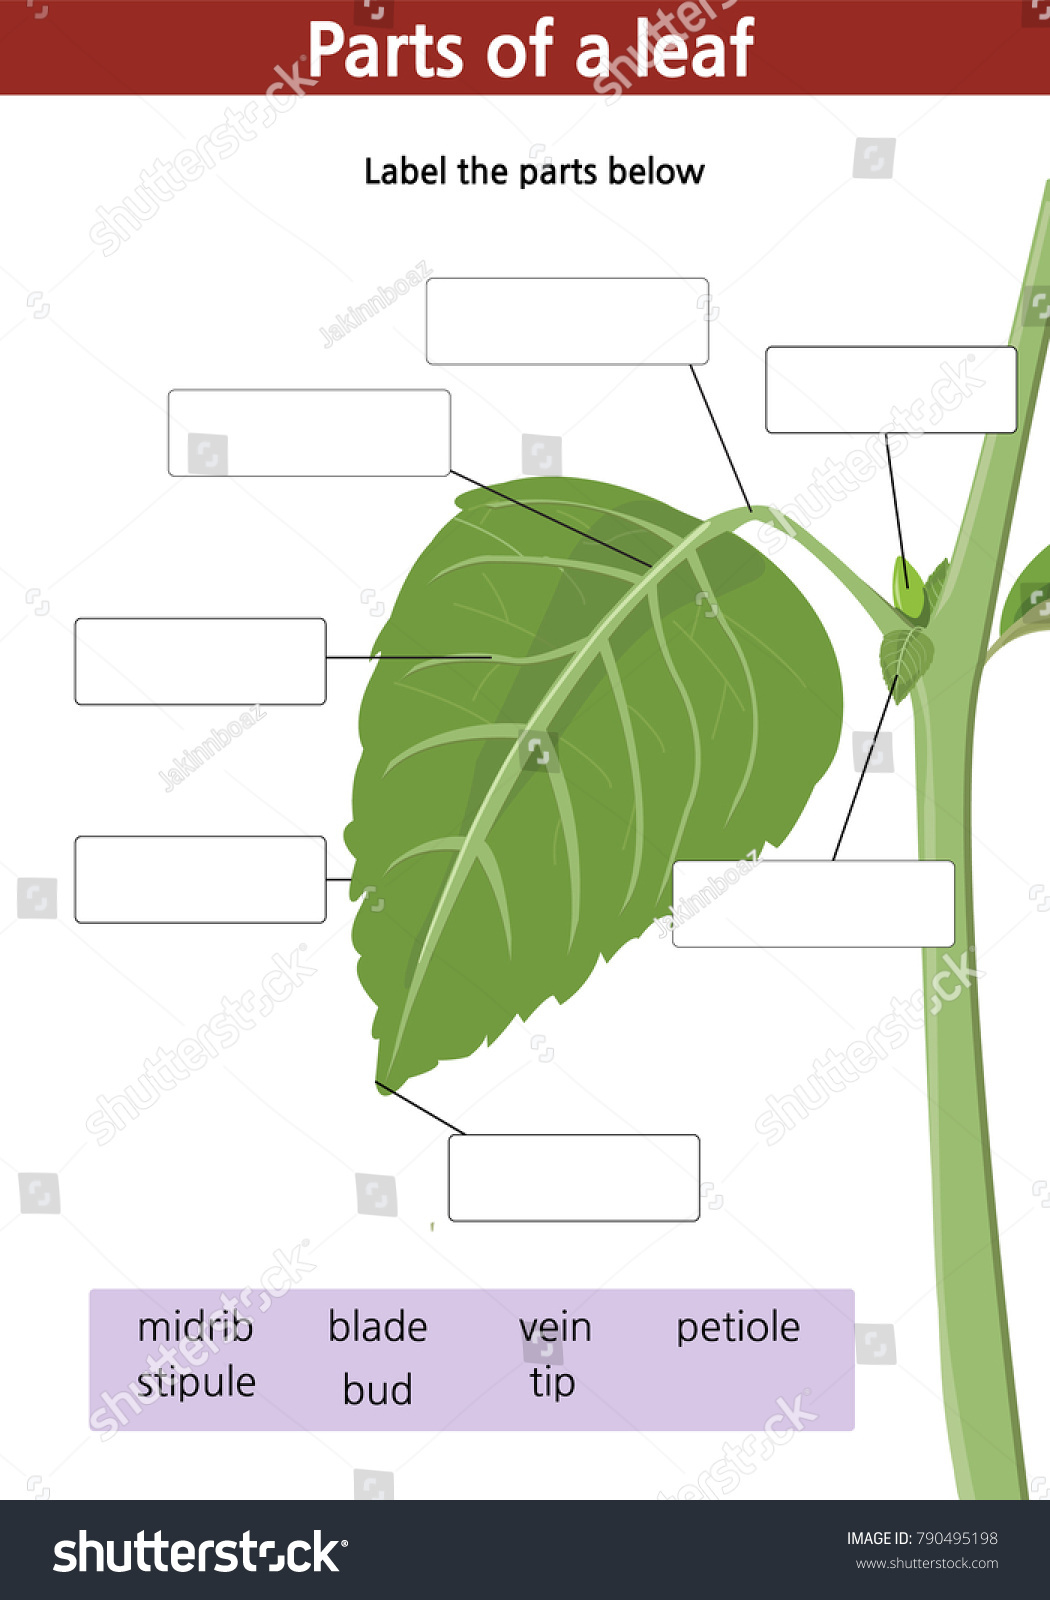 Worksheets Parts Of A Leaf Worksheet Cheatslist Free Worksheets For Kids Amp Printable